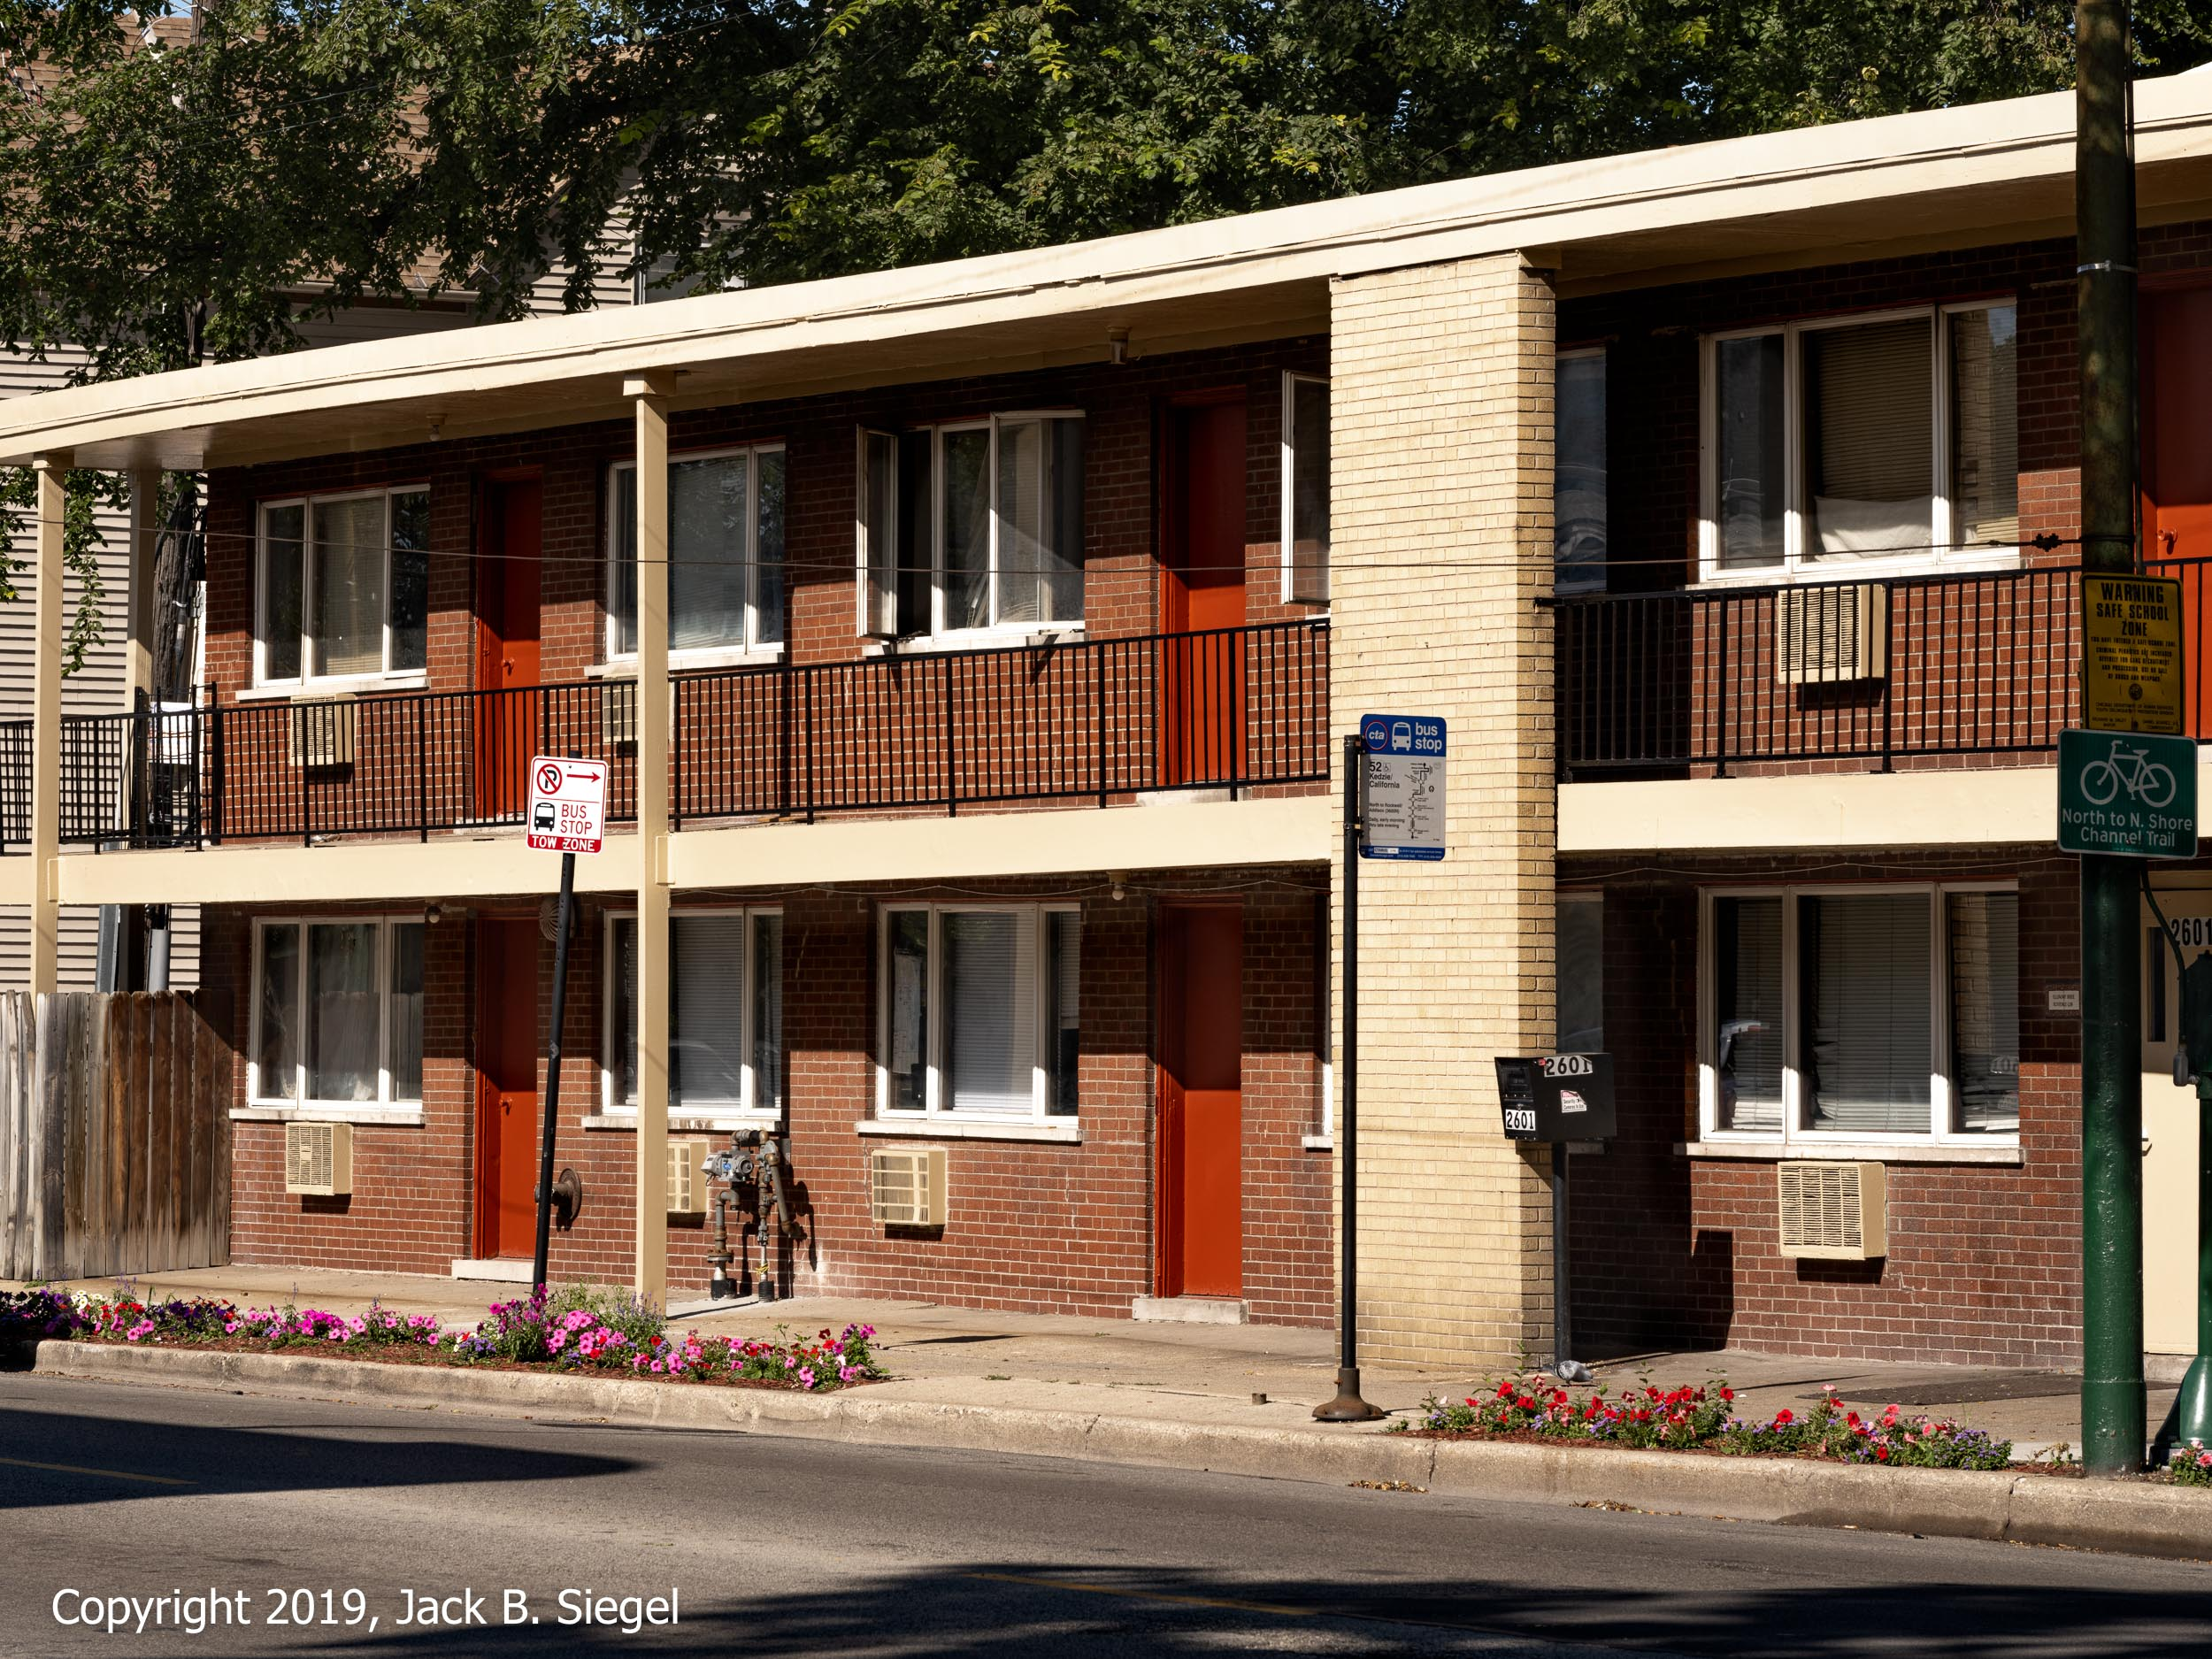 Fifties Housing in the Afternoon Sun (Logan Square)